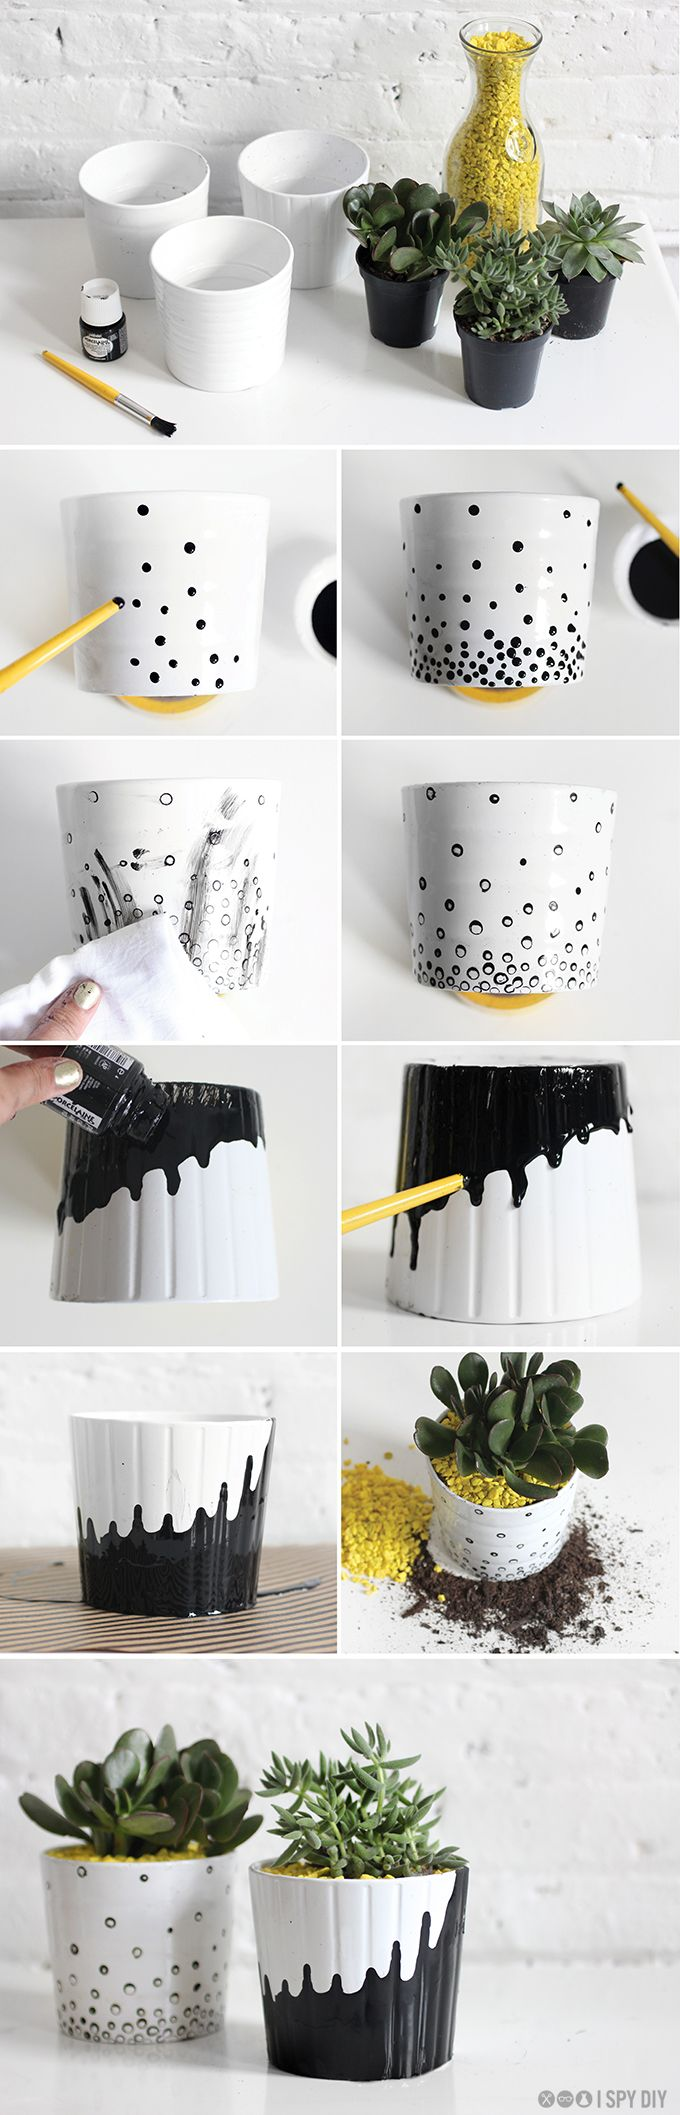 MY DIY | Painted Succulent Pot | I SPY DIY